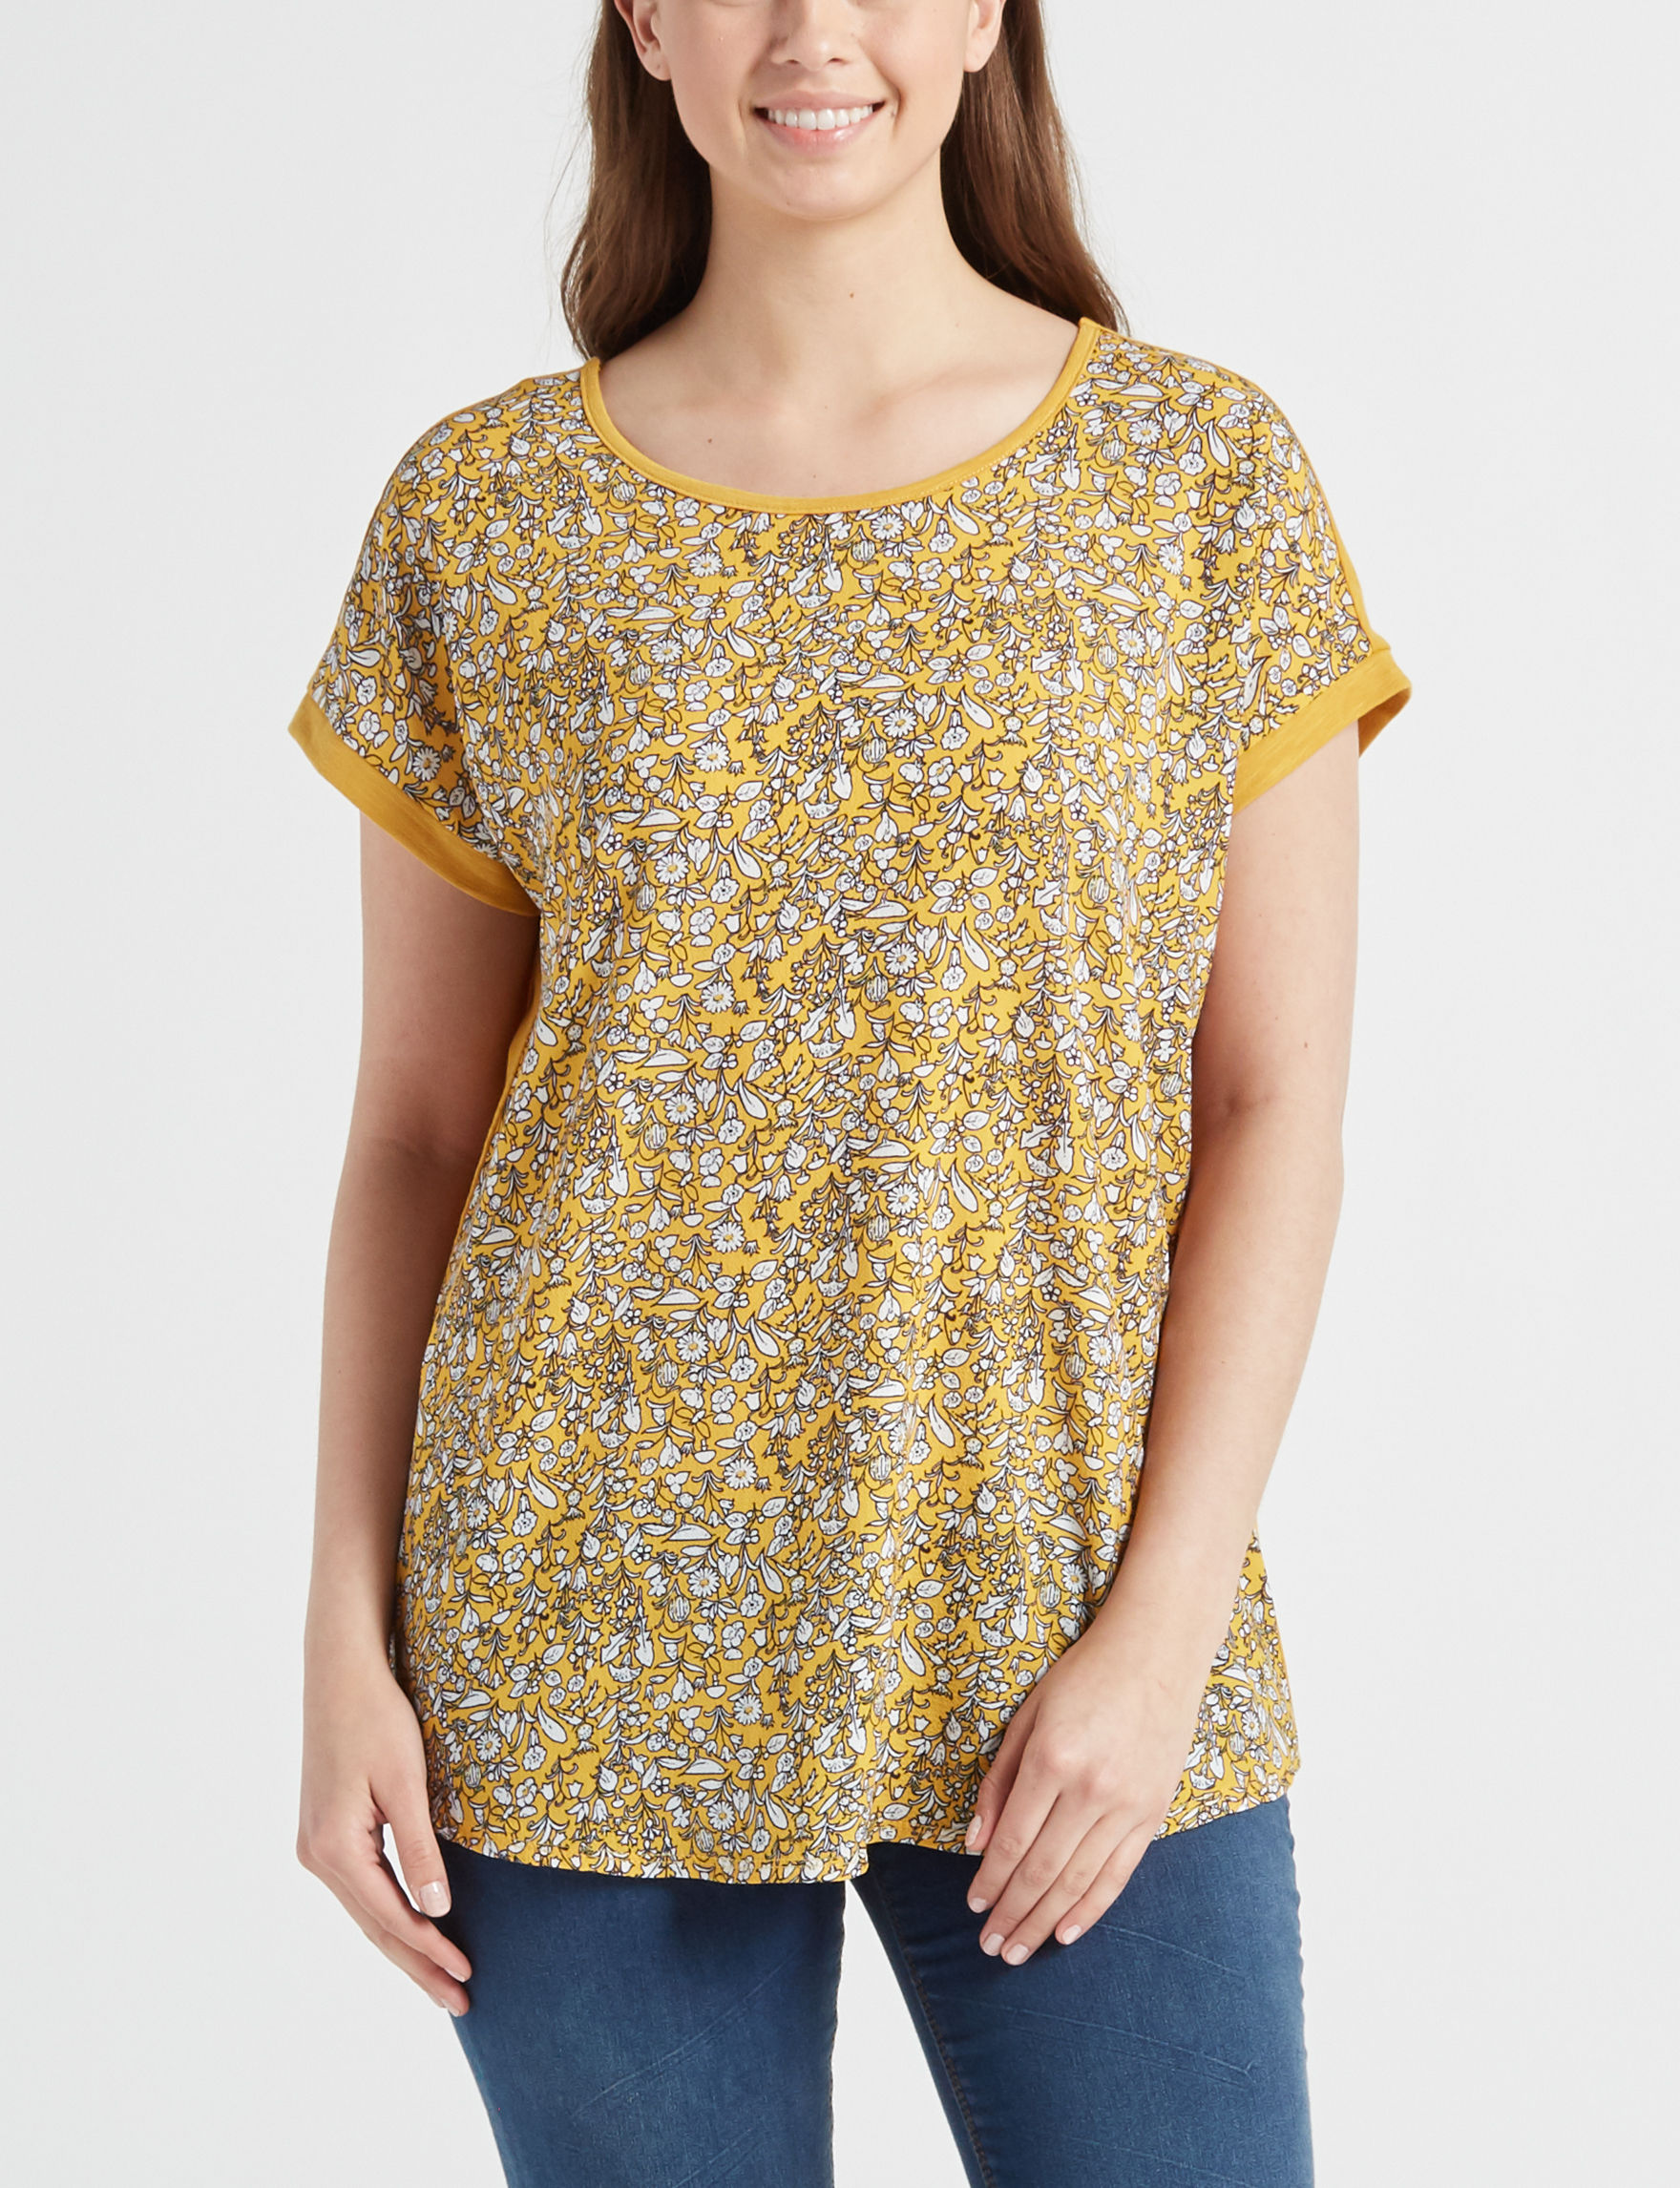 With Love Gold Shirts & Blouses